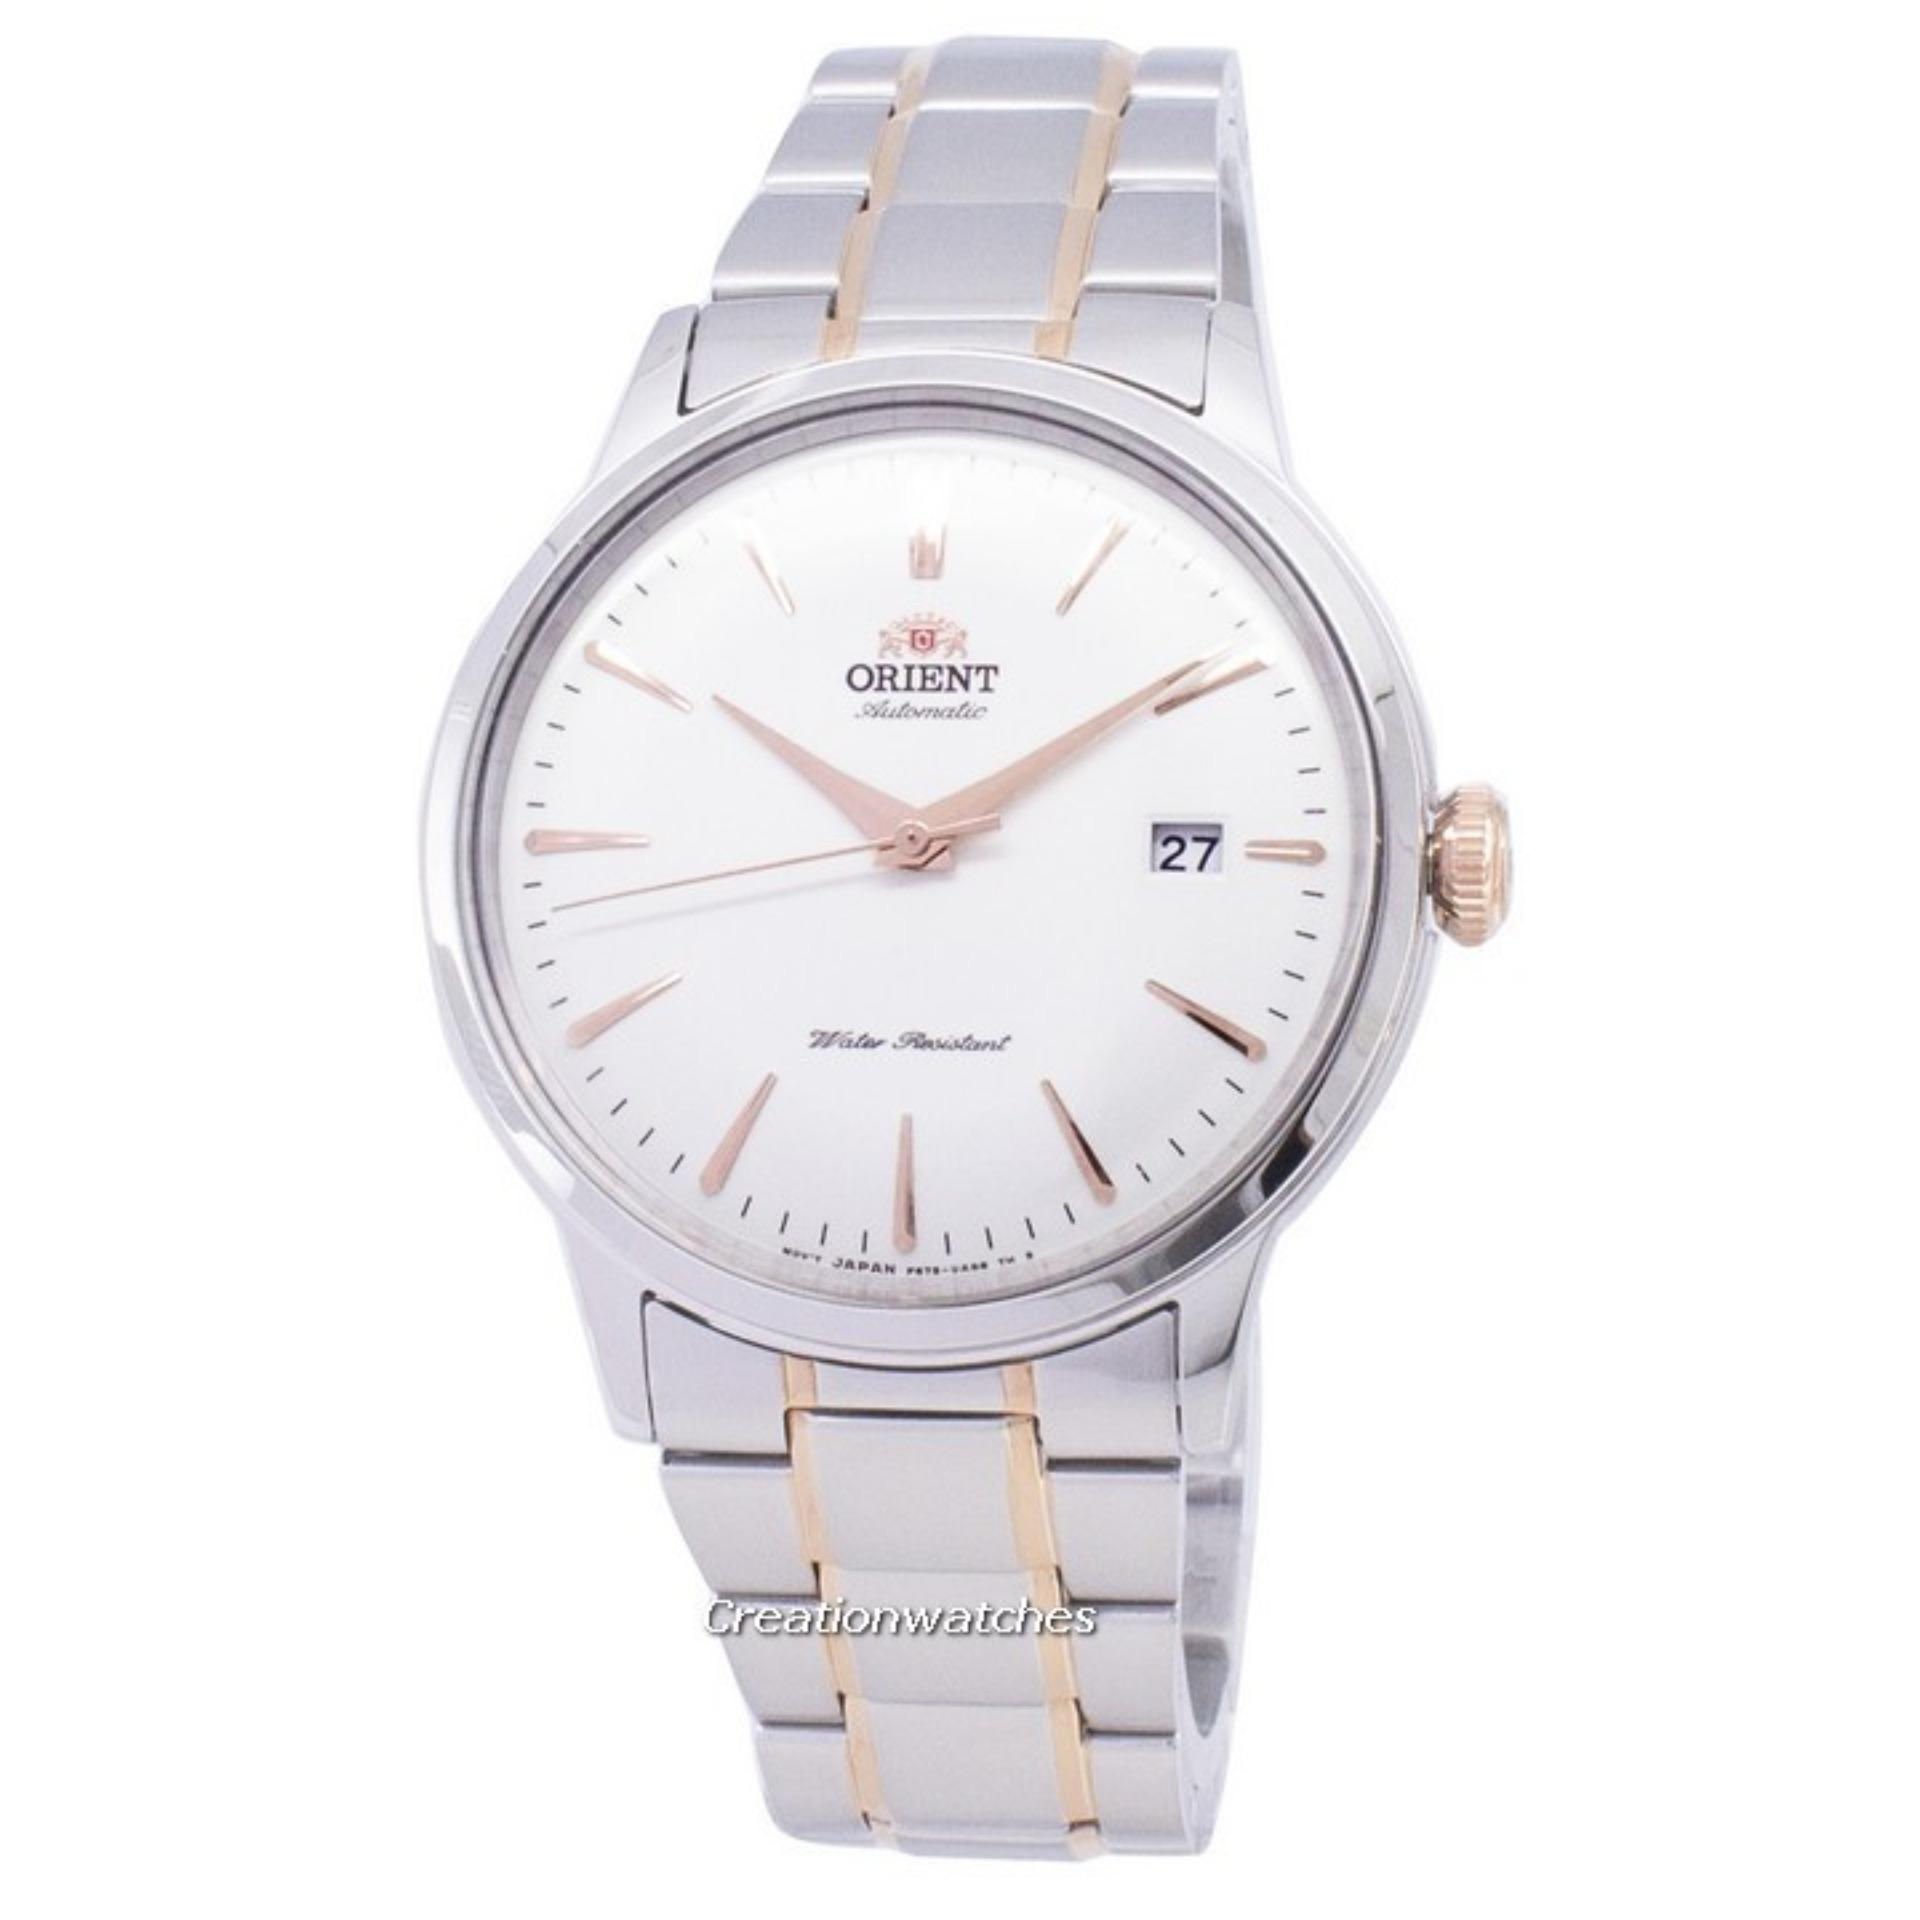 Orient Bambino Automatic Men's Two Tone Stainless Steel Bracelet Watch RA-AC0004S10B